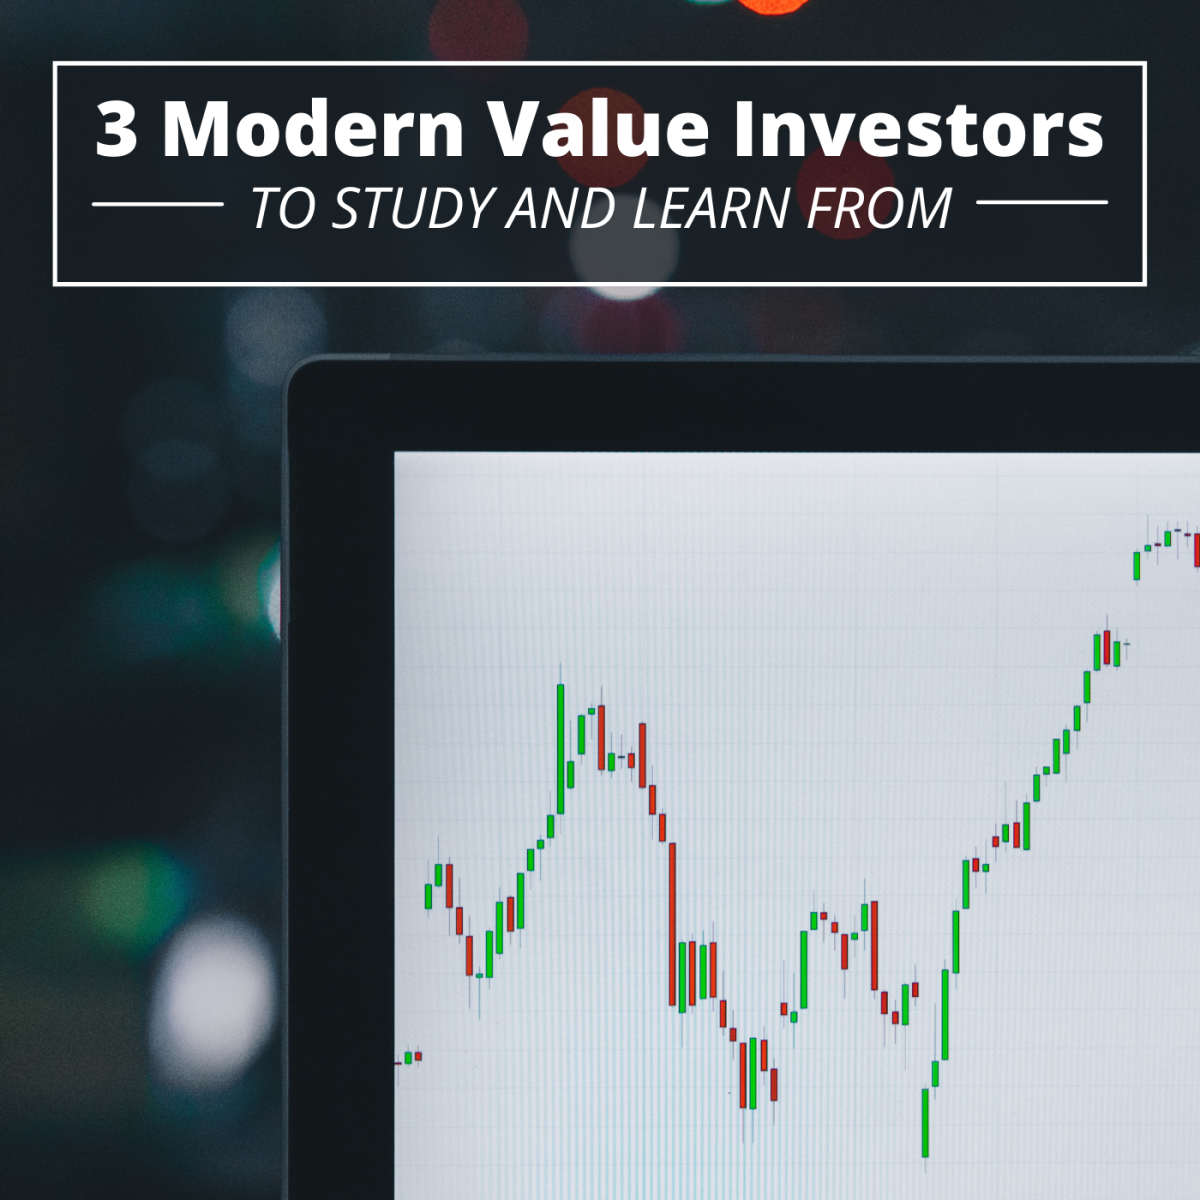 These three value investors have beat the market and consistently raked in impressive returns in the last few decades.